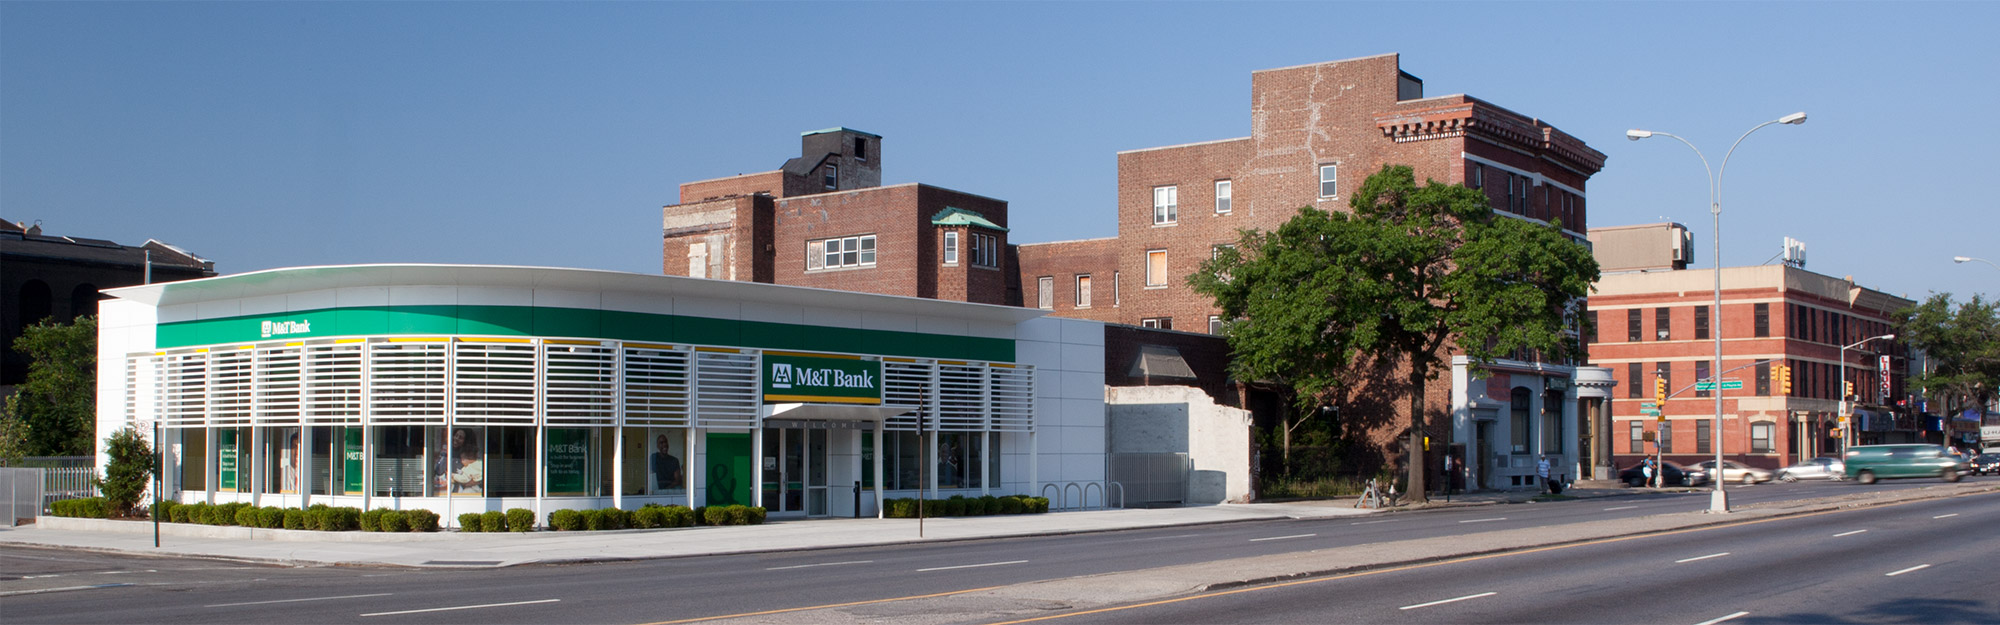 Featured image for M&T Bank Central Branch